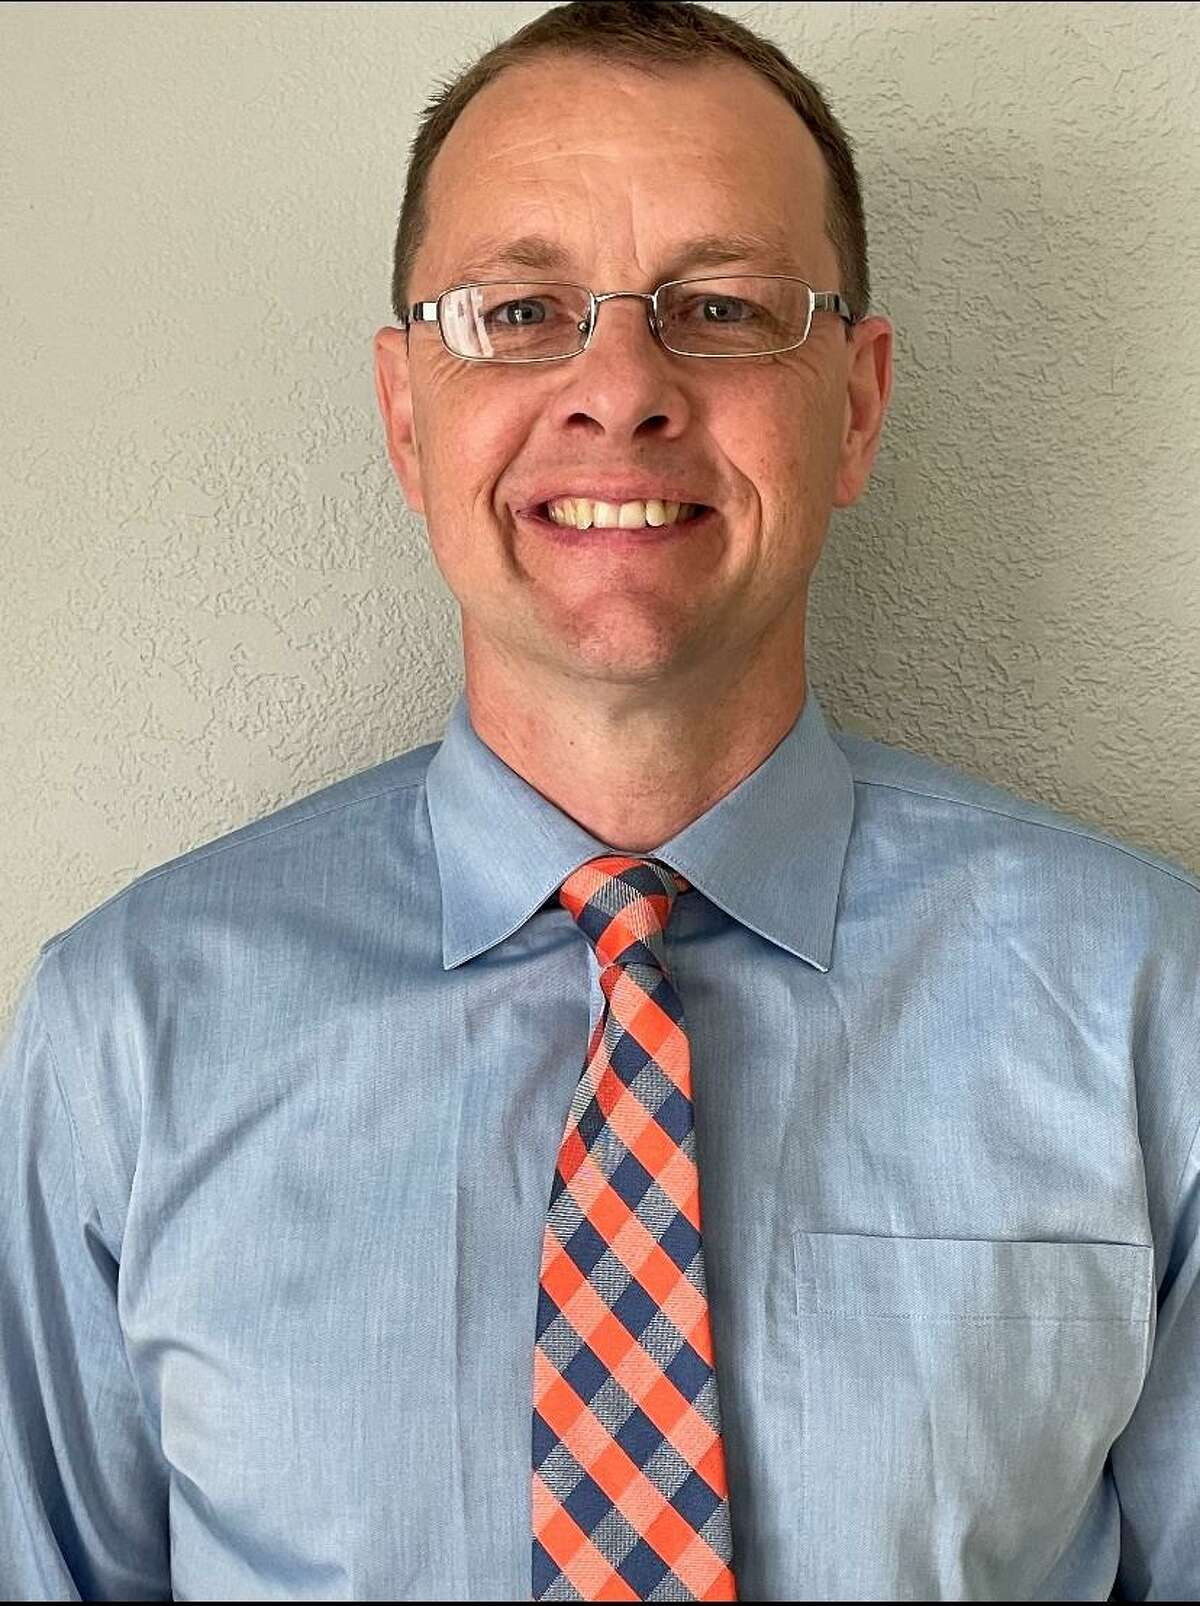 Robert Ingalls will serve as the principal for Montgomery Elementary School beginning in July.